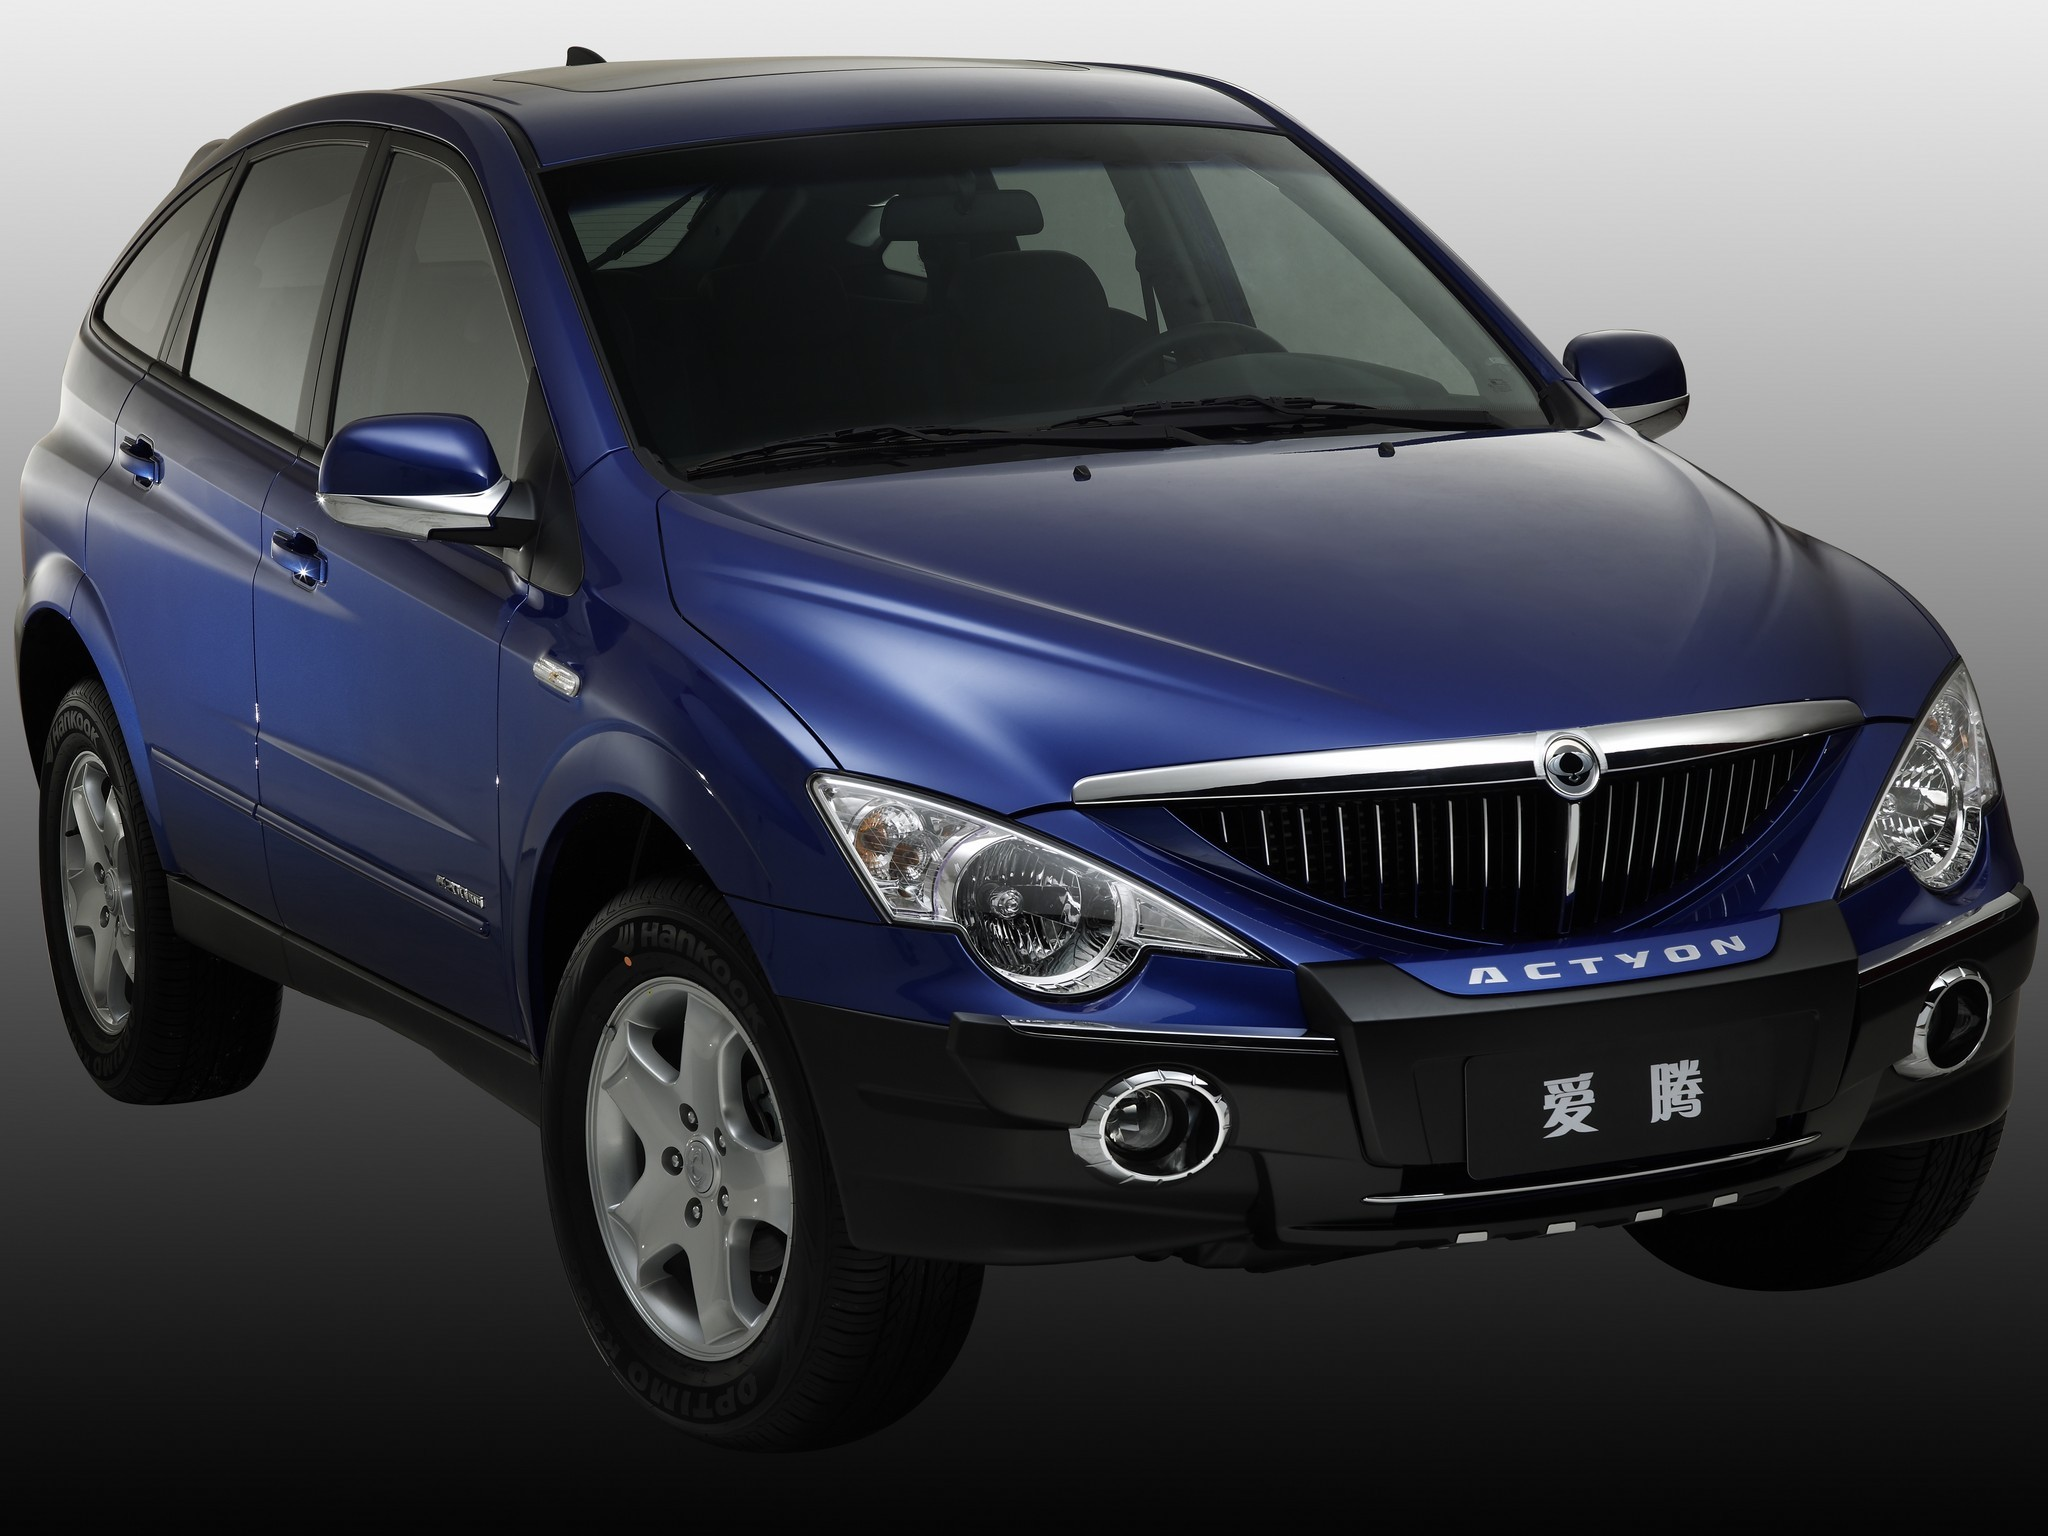 Make A Car >> SSANGYONG Actyon specs & photos - 2006, 2007, 2008, 2009 ...